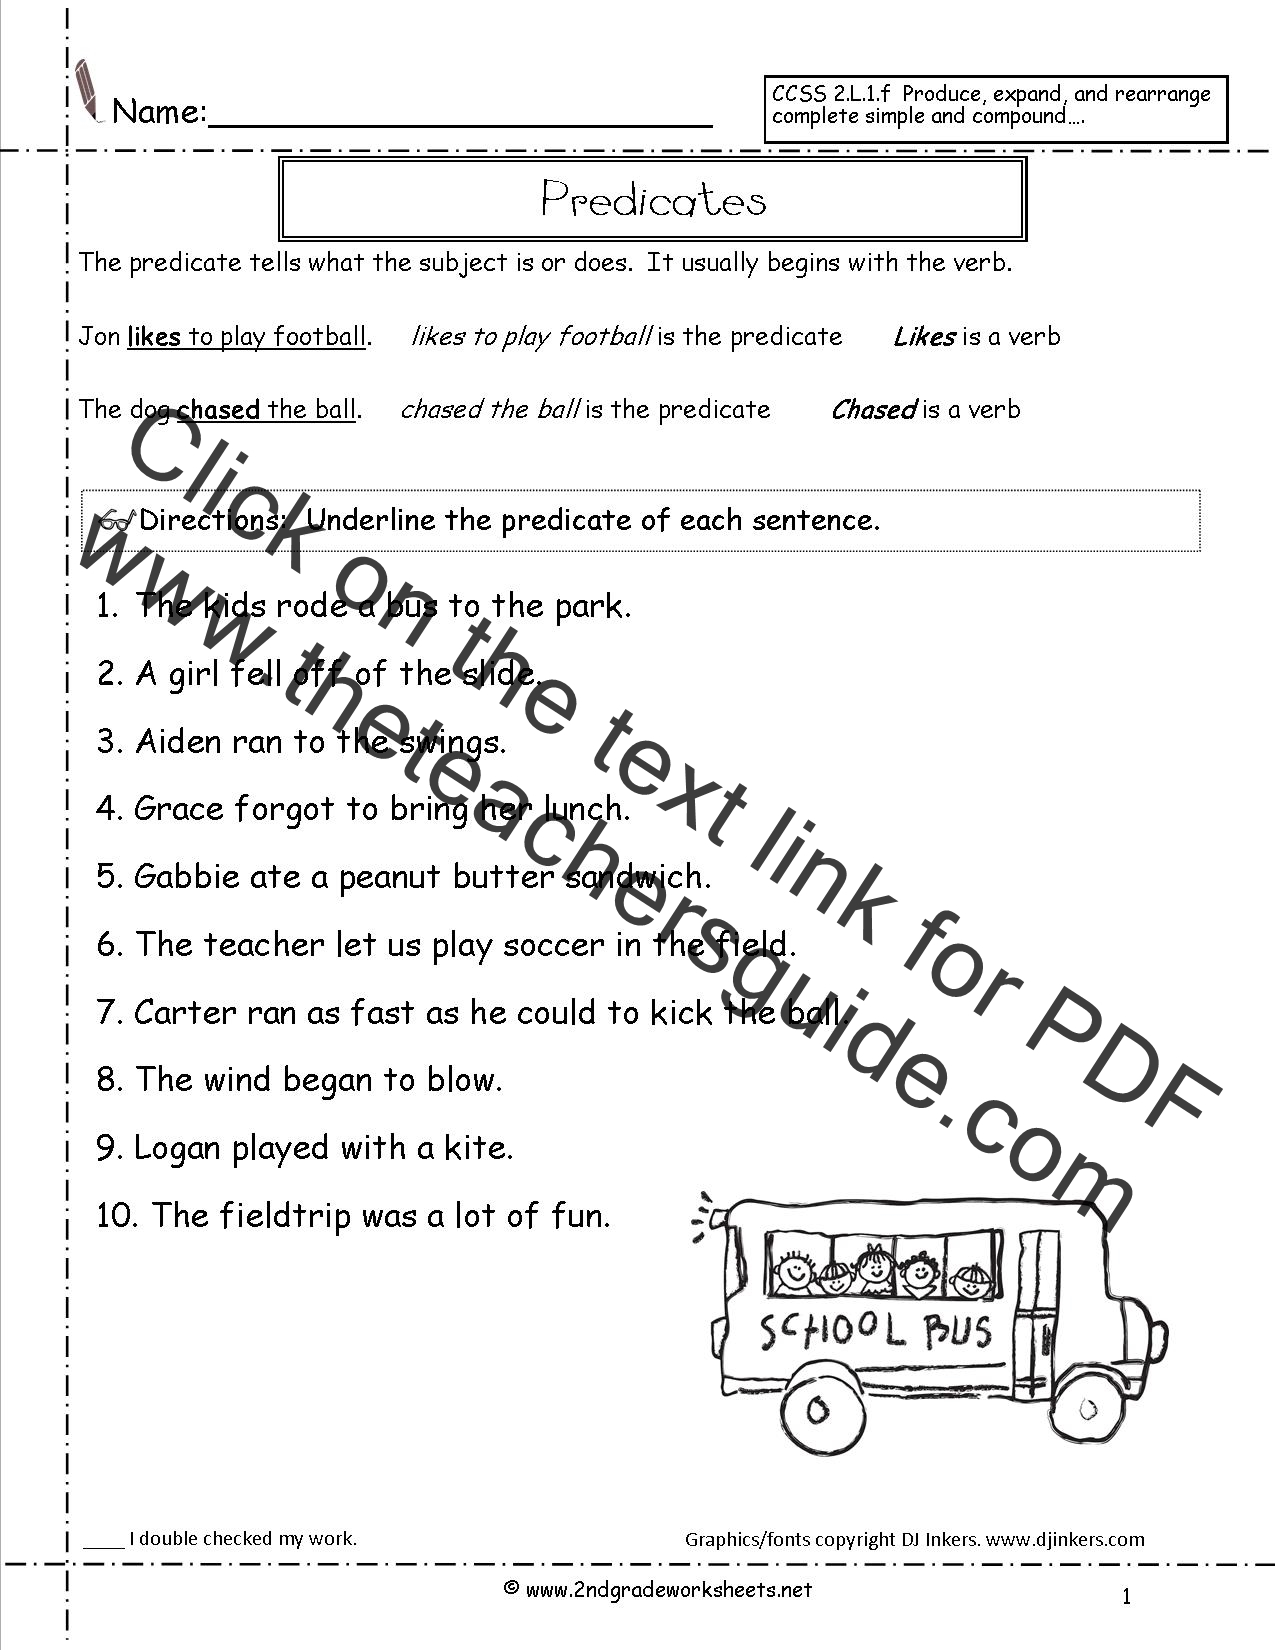 Worksheets Editing Worksheet second grade sentences worksheets ccss 2 l 1 f sentence worksheet predicates